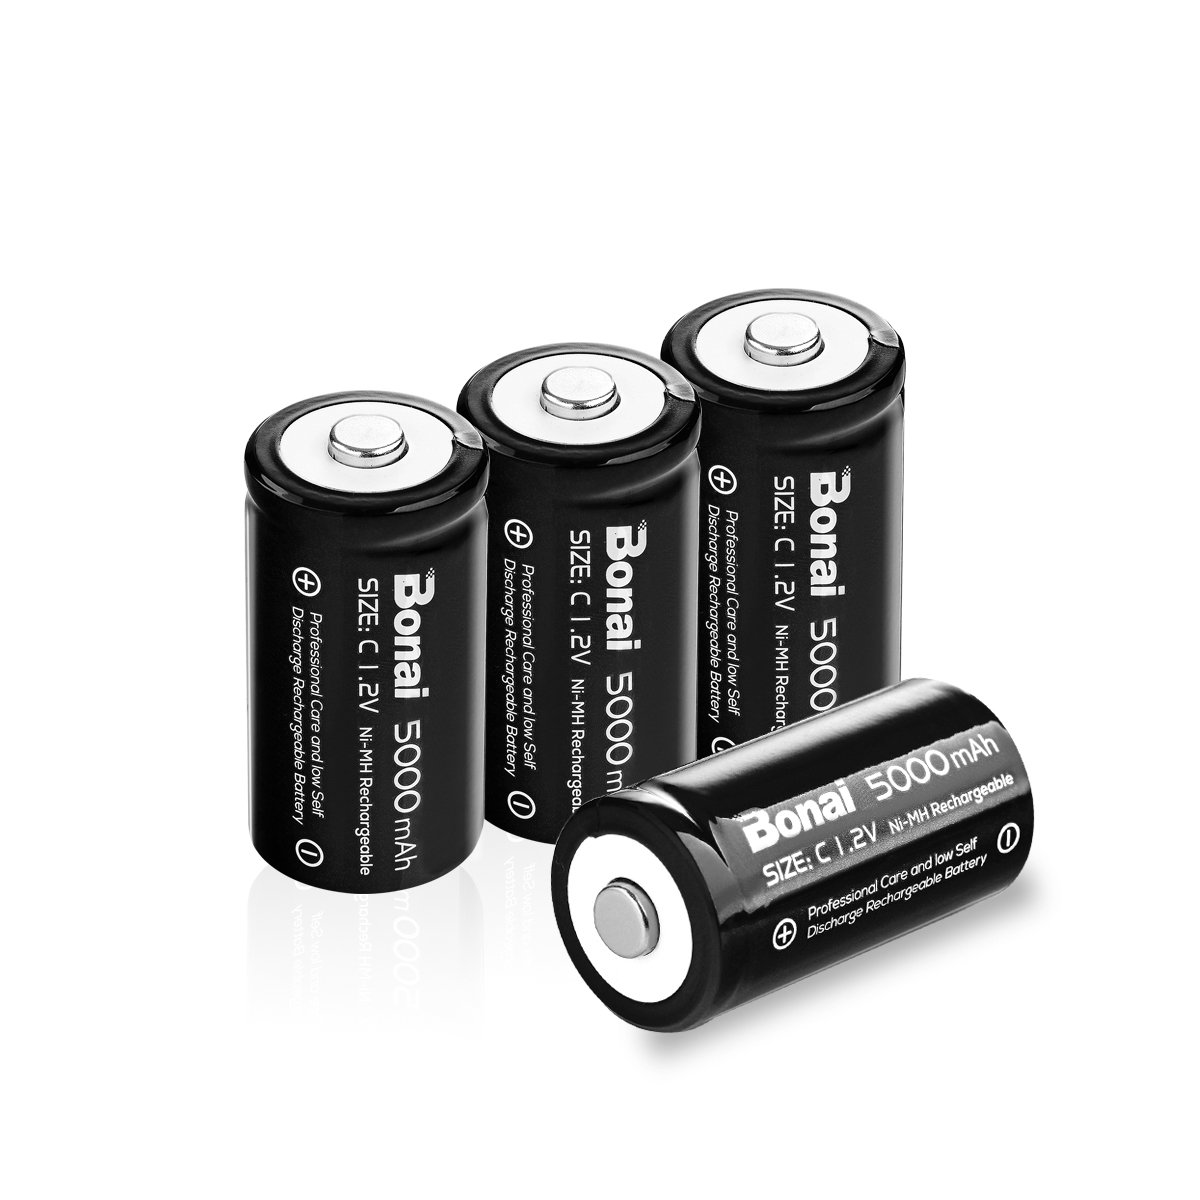 BONAI Rechargeable C Batteries, C Cells 5000mAh 1.2V Ni-MH High Capacity C Size Battery (4 Pack) by BONAI